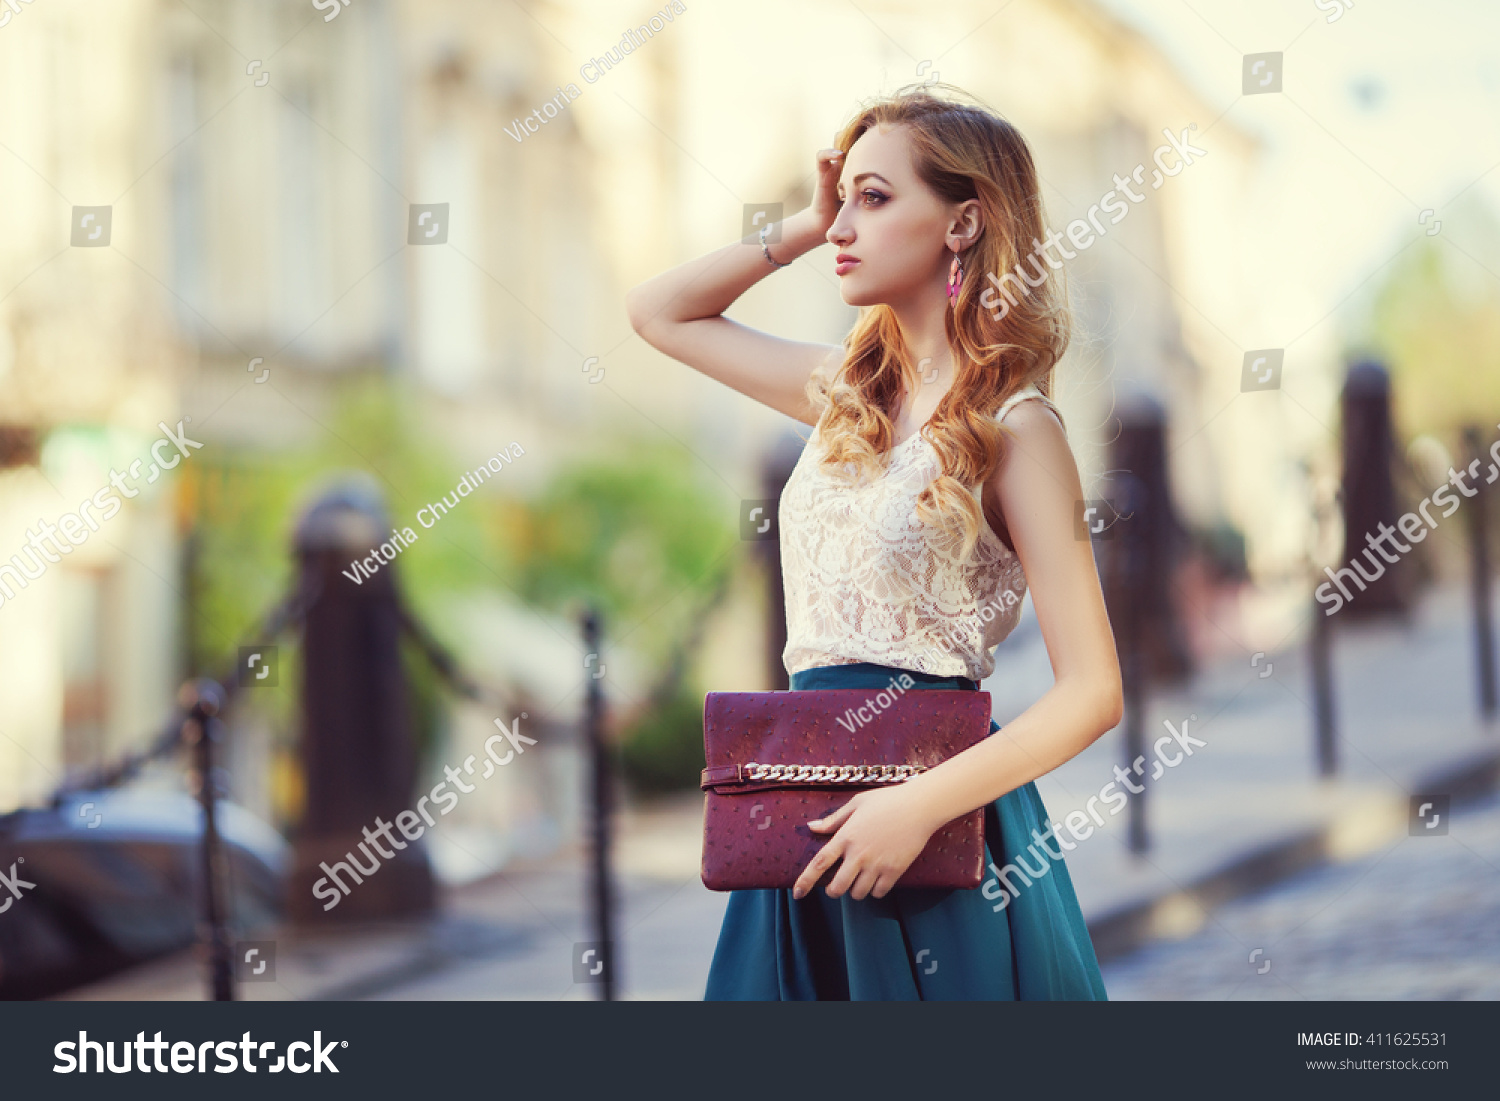 Outdoor portrait of a young beautiful fashionable lady walking posing on a street of the old city Model wearing stylish clothes Girl looking aside Female fashion concept City lifestyle